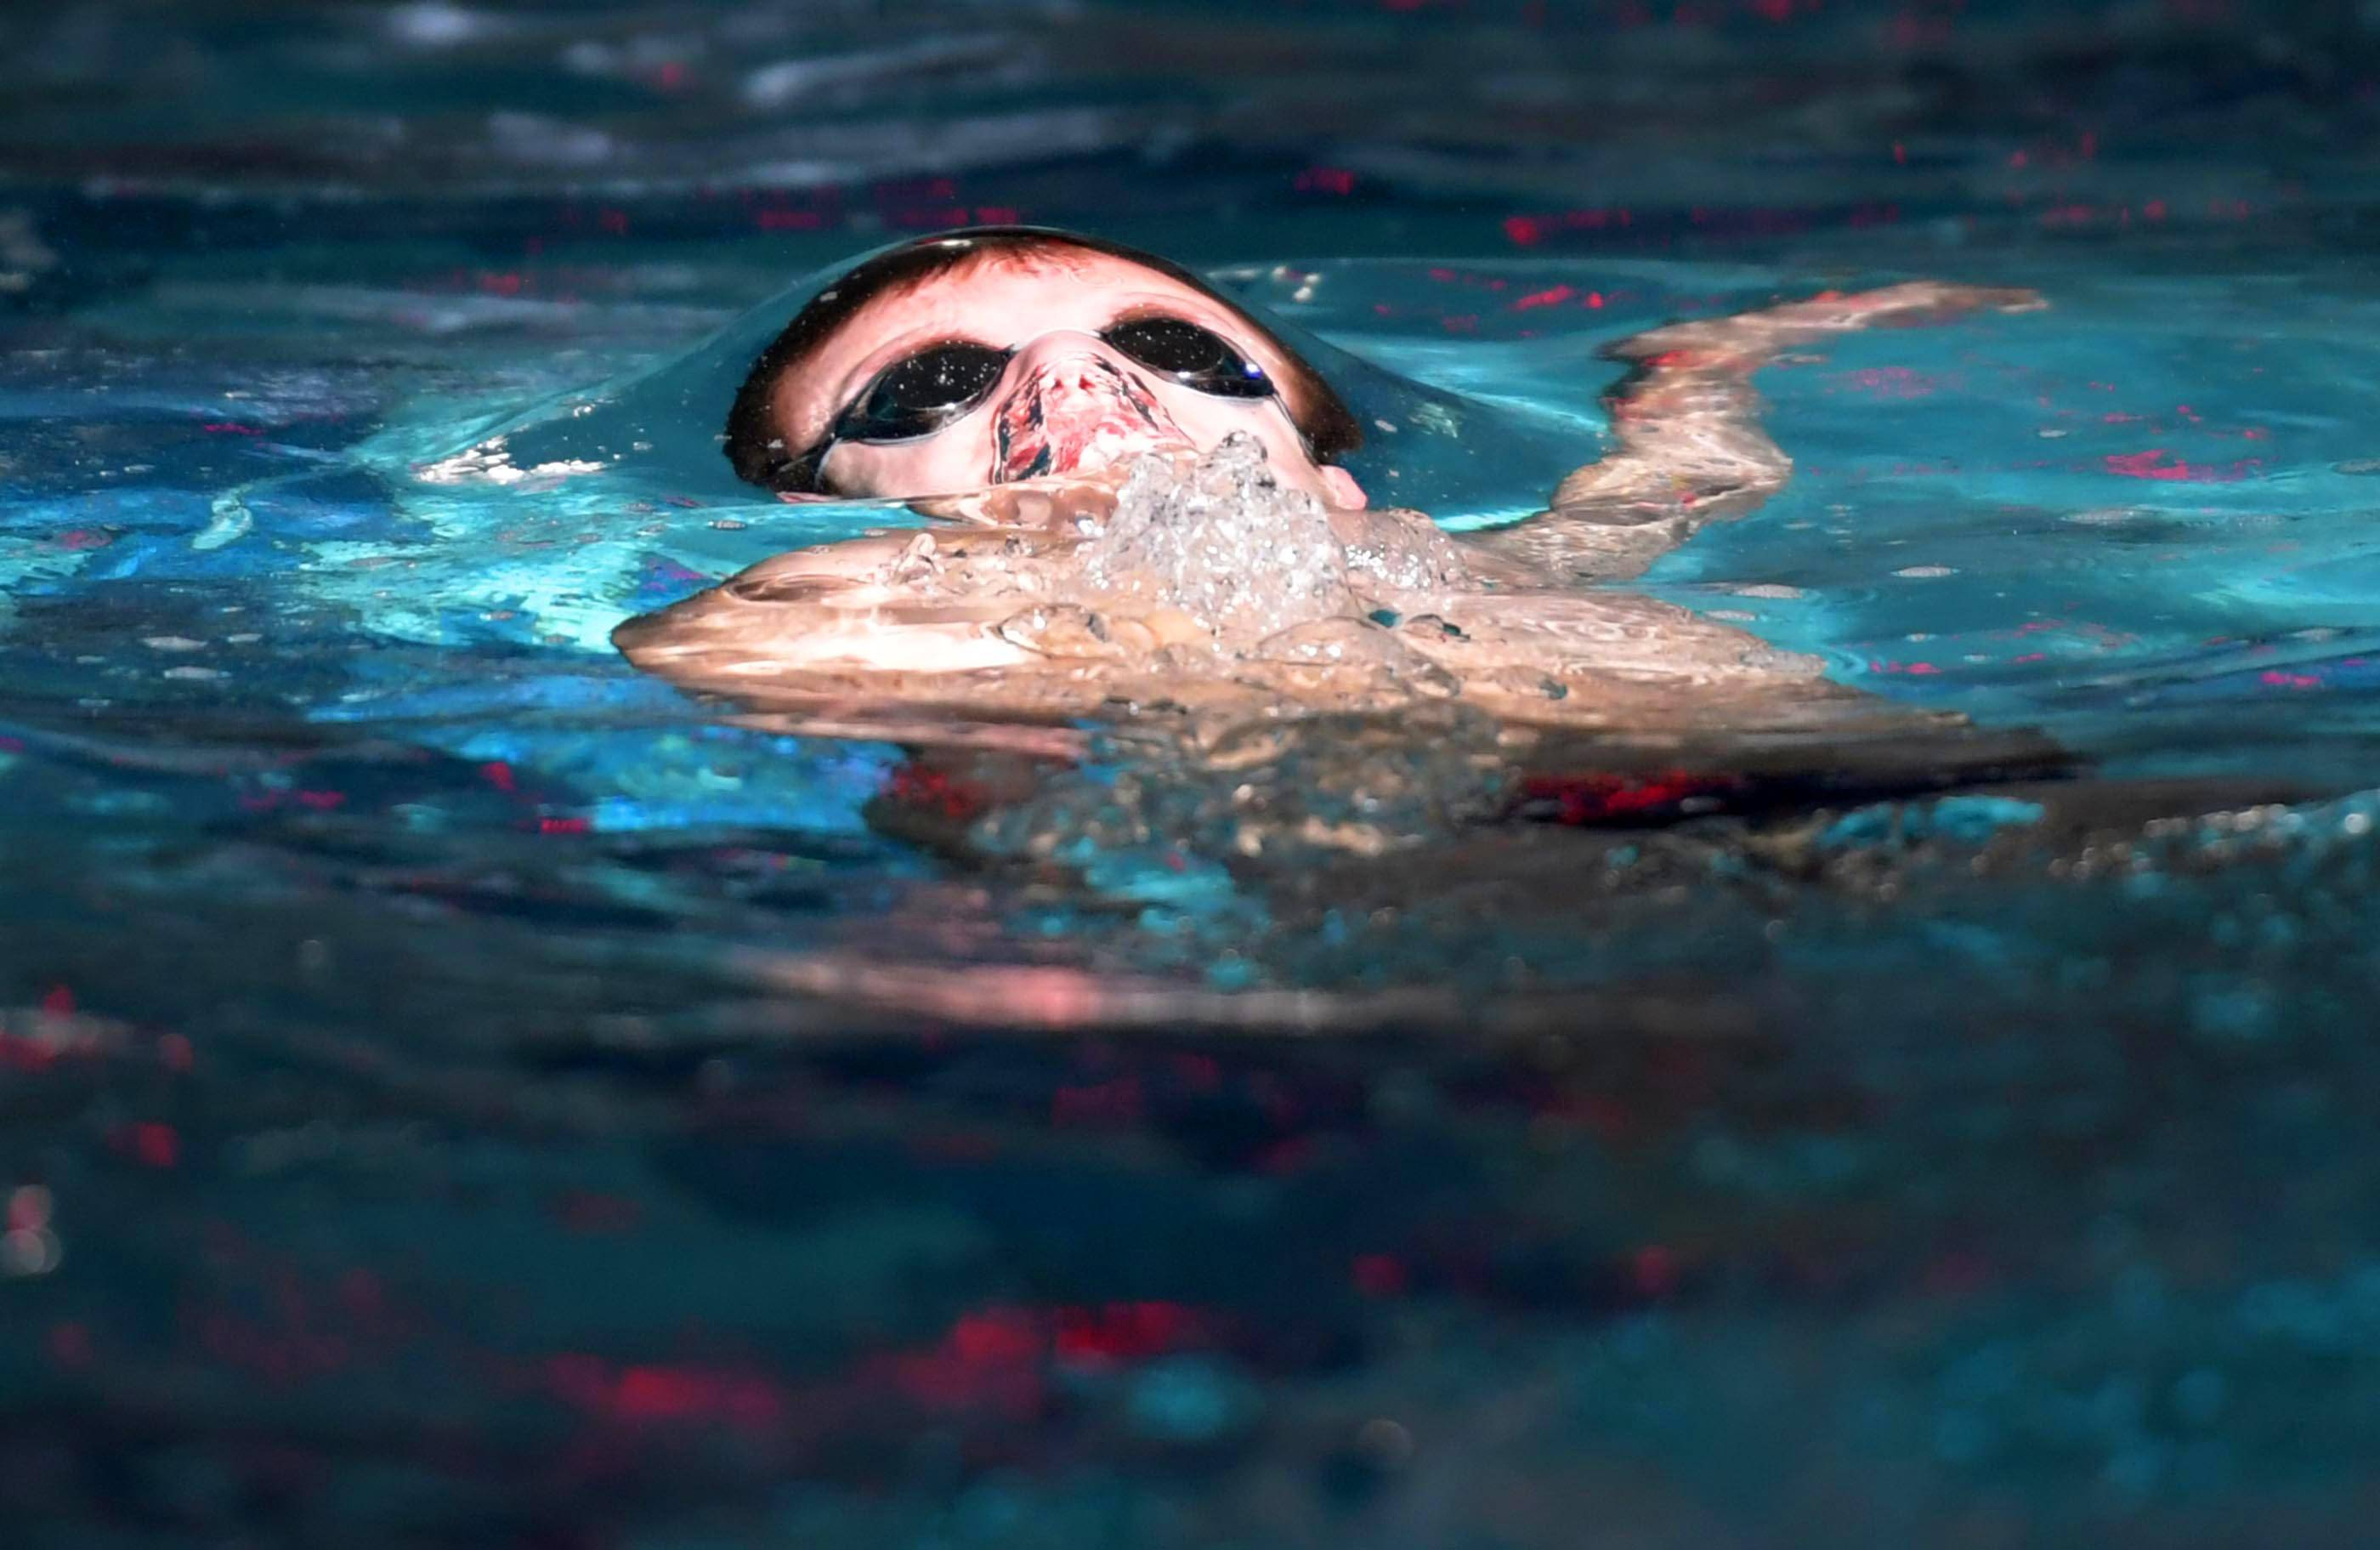 Bartlett High School's Truman Jacobson rises out of the water in a beam of window light during the backstroke leg of the 200-yard medley relay Saturday at the Wildcat Relays hosted by West Chicago and Batavia at West Chicago's Community High School.